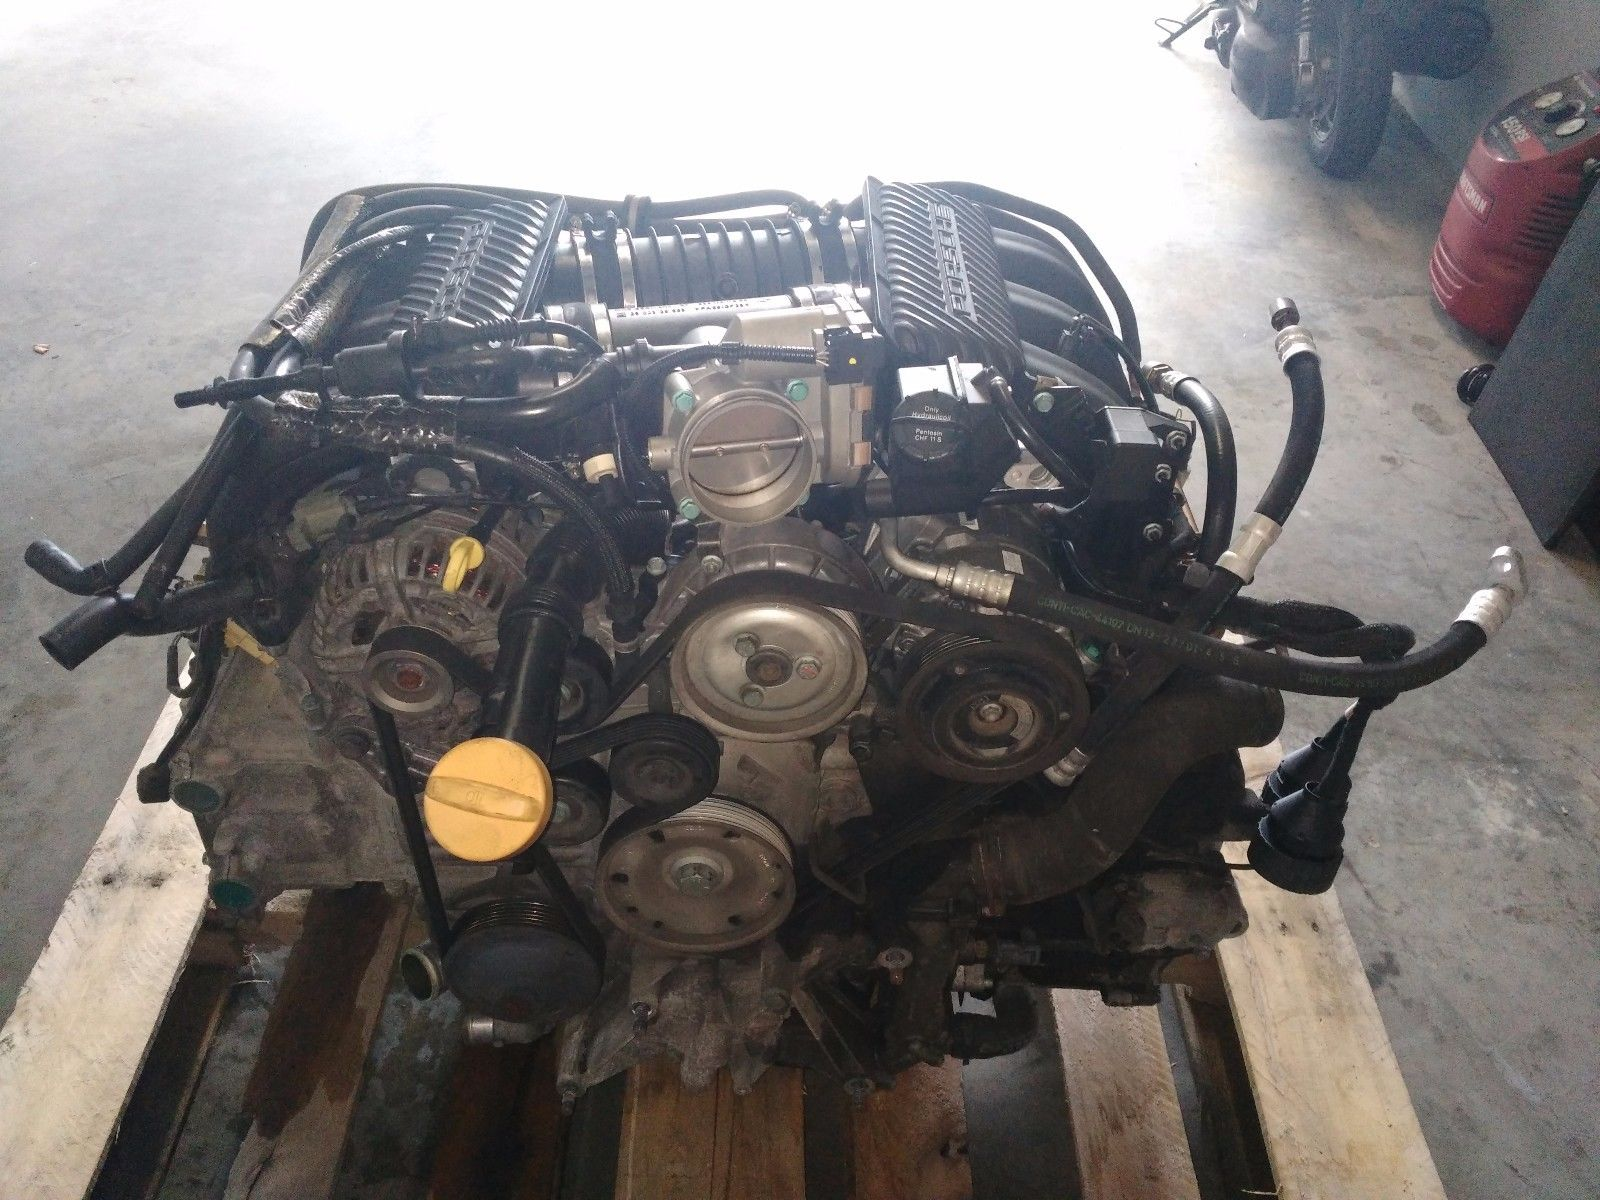 99-01 PORSCHE 996 CARRERA 3.4L COMPLETE USED ENGINE 44,700 MILES UPGRADED IMS